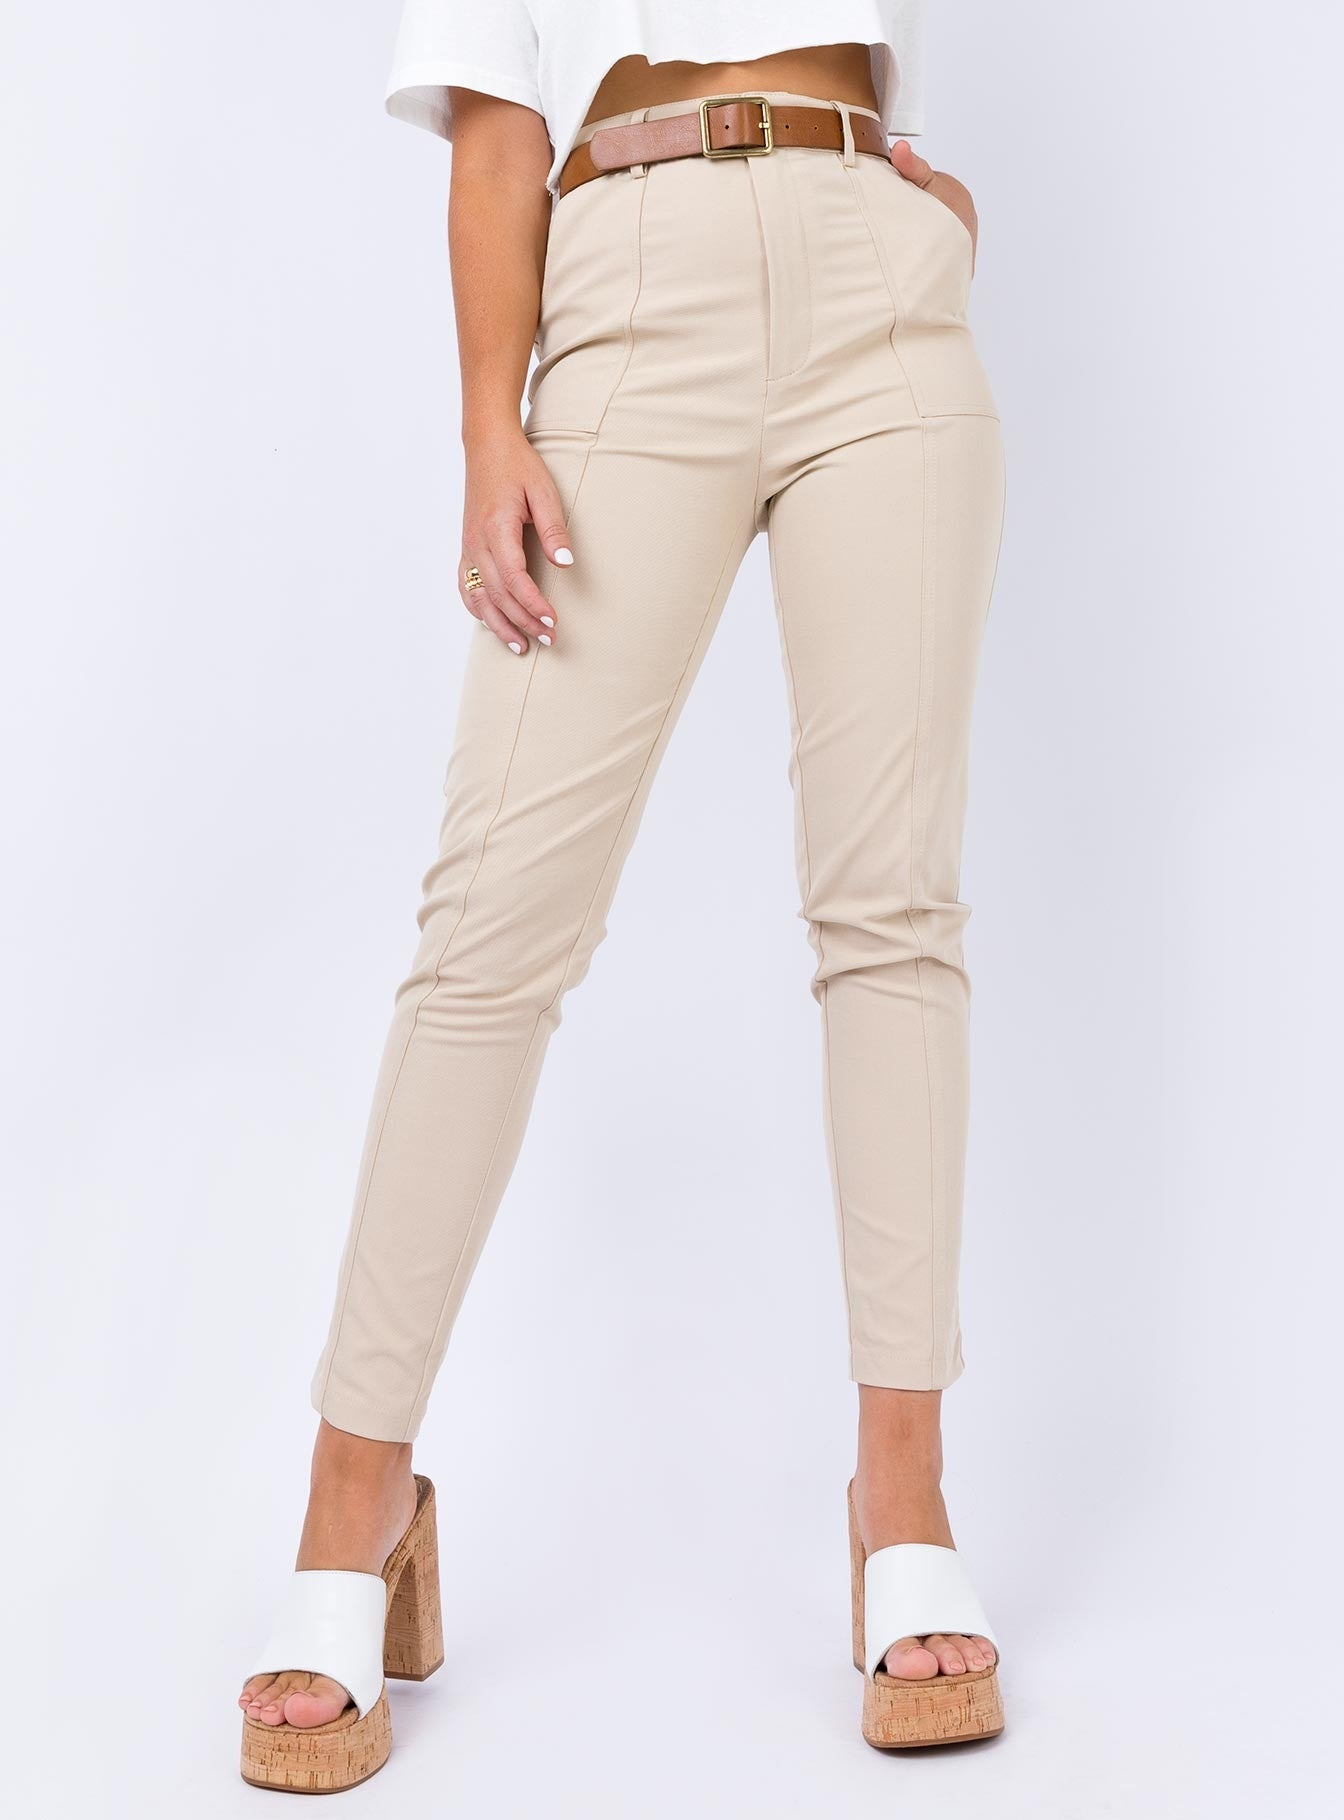 The Enon Pants Beige